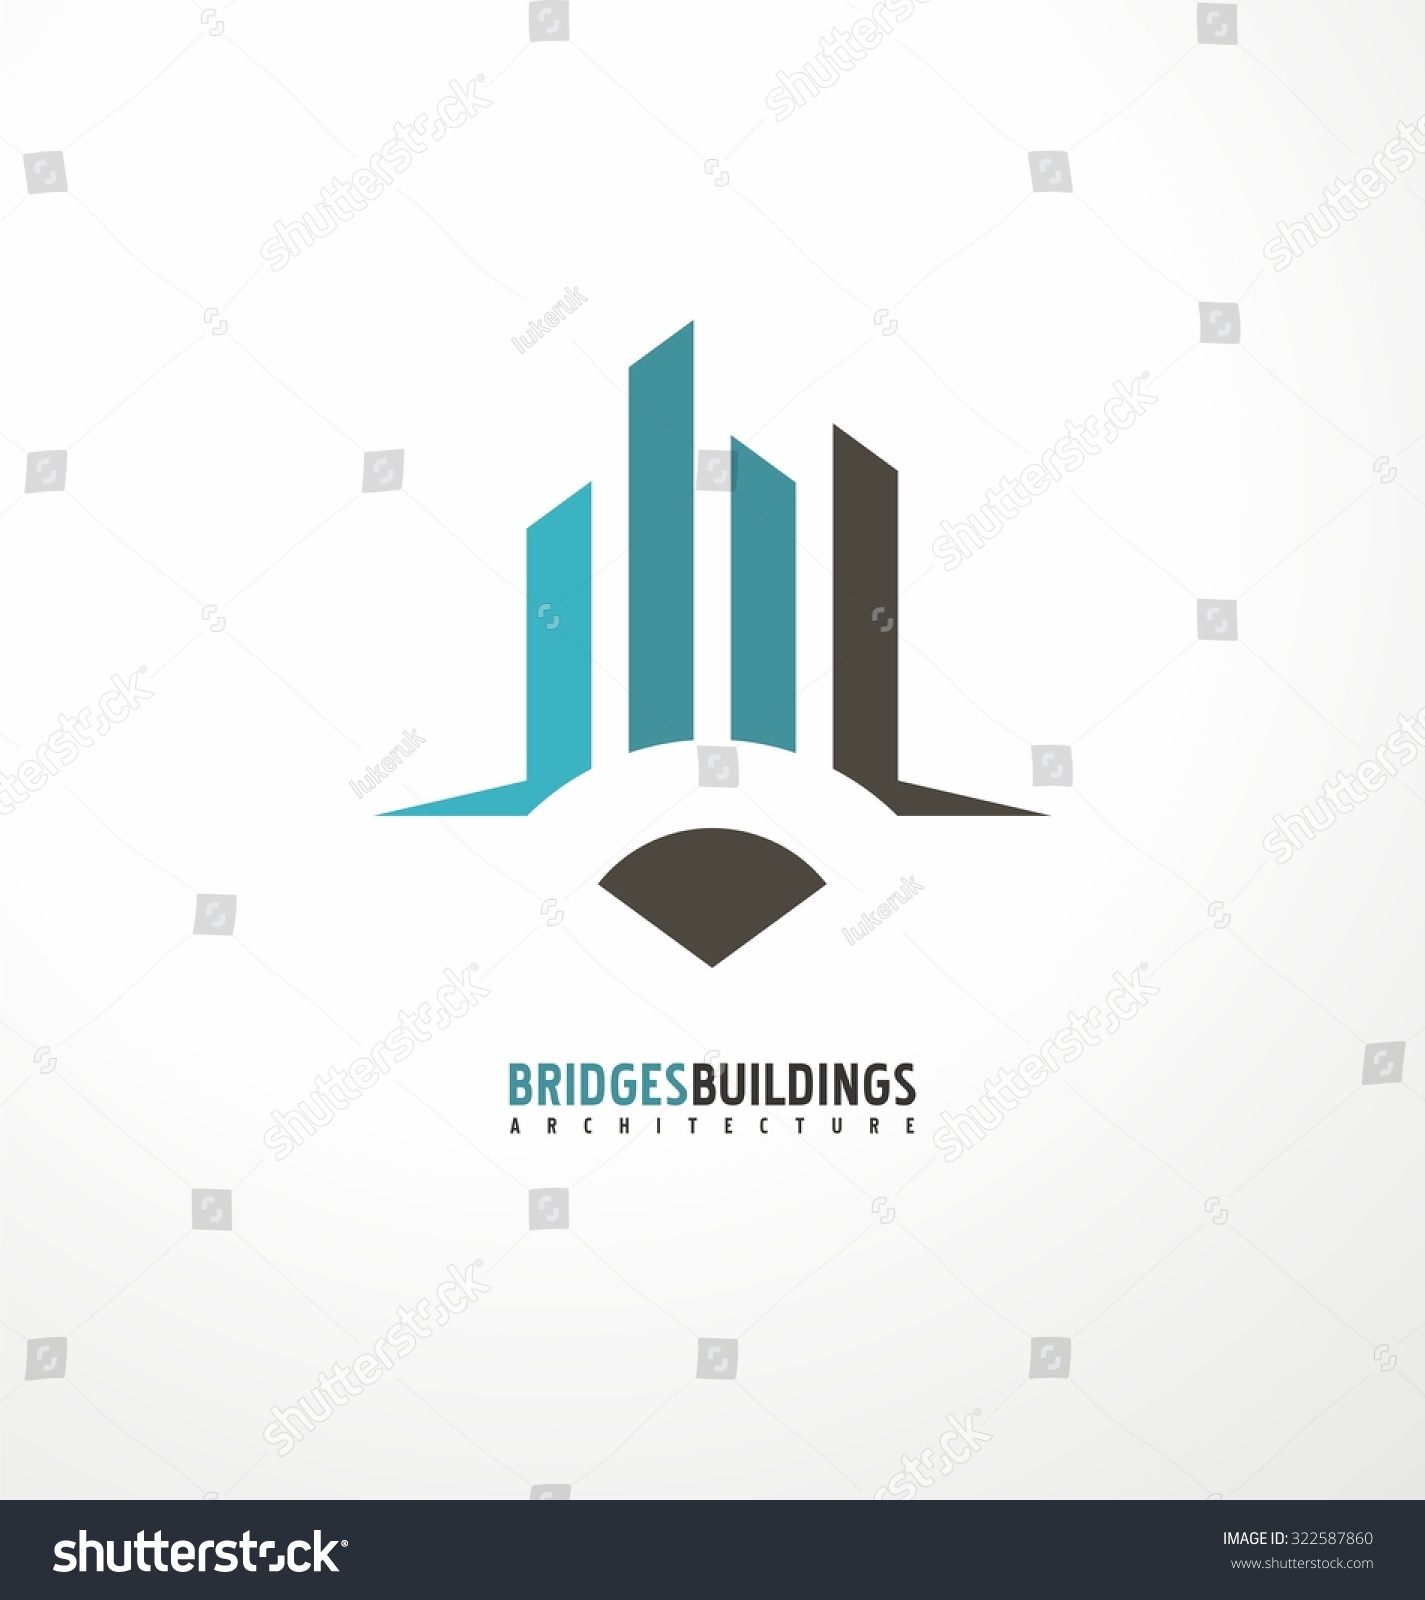 Creative concept pencil city skyline bridge stock vector for Space architecture and design